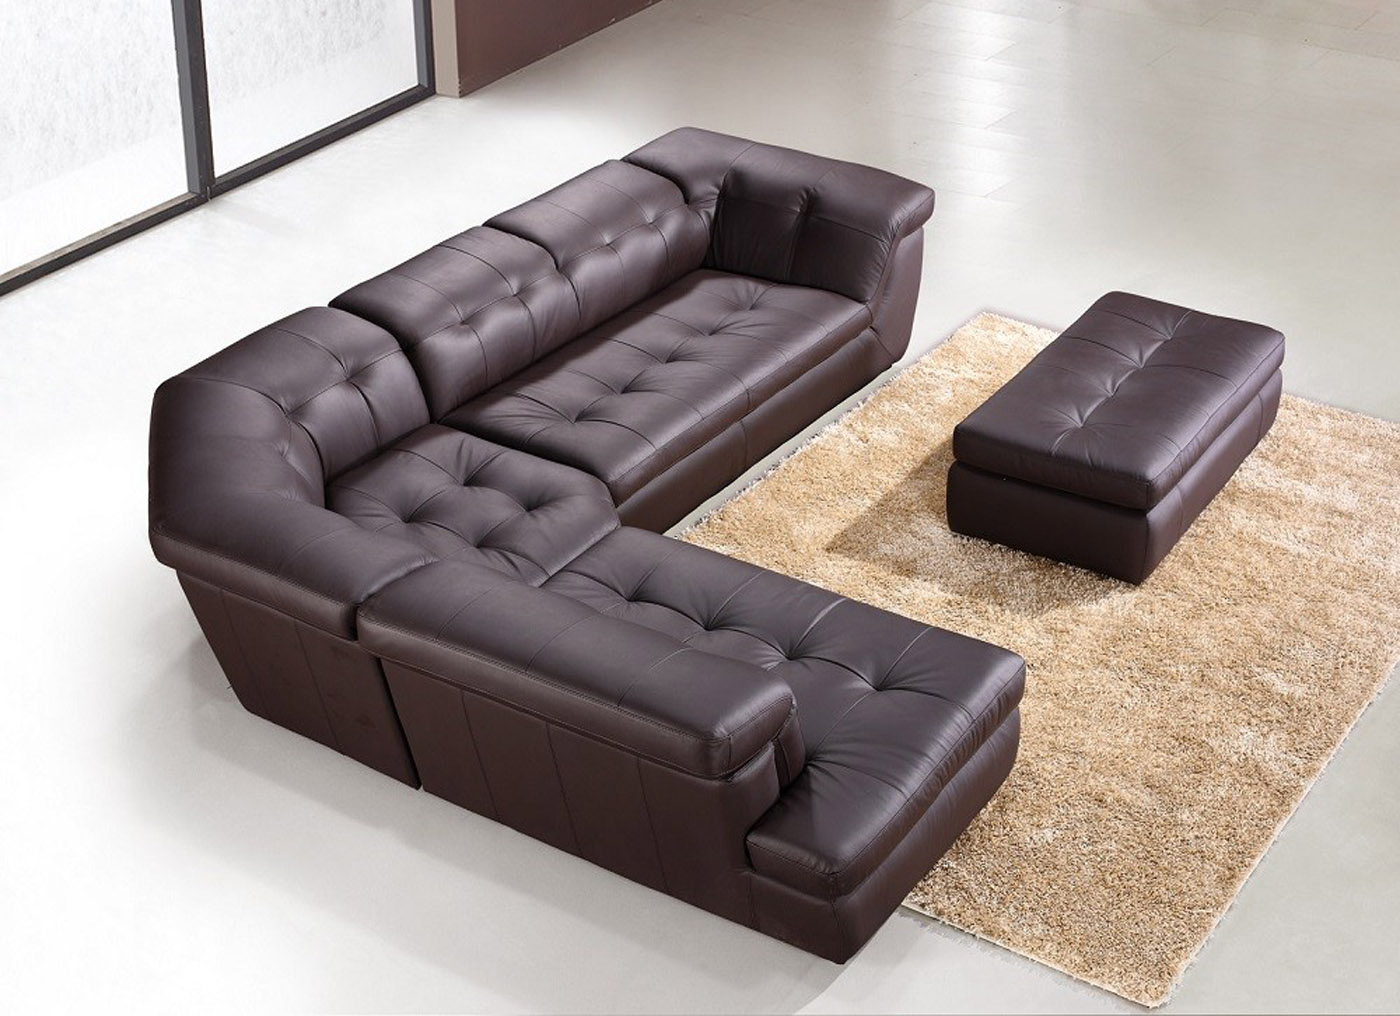 Exclusive Leather Upholstery Corner L-shape Sofa